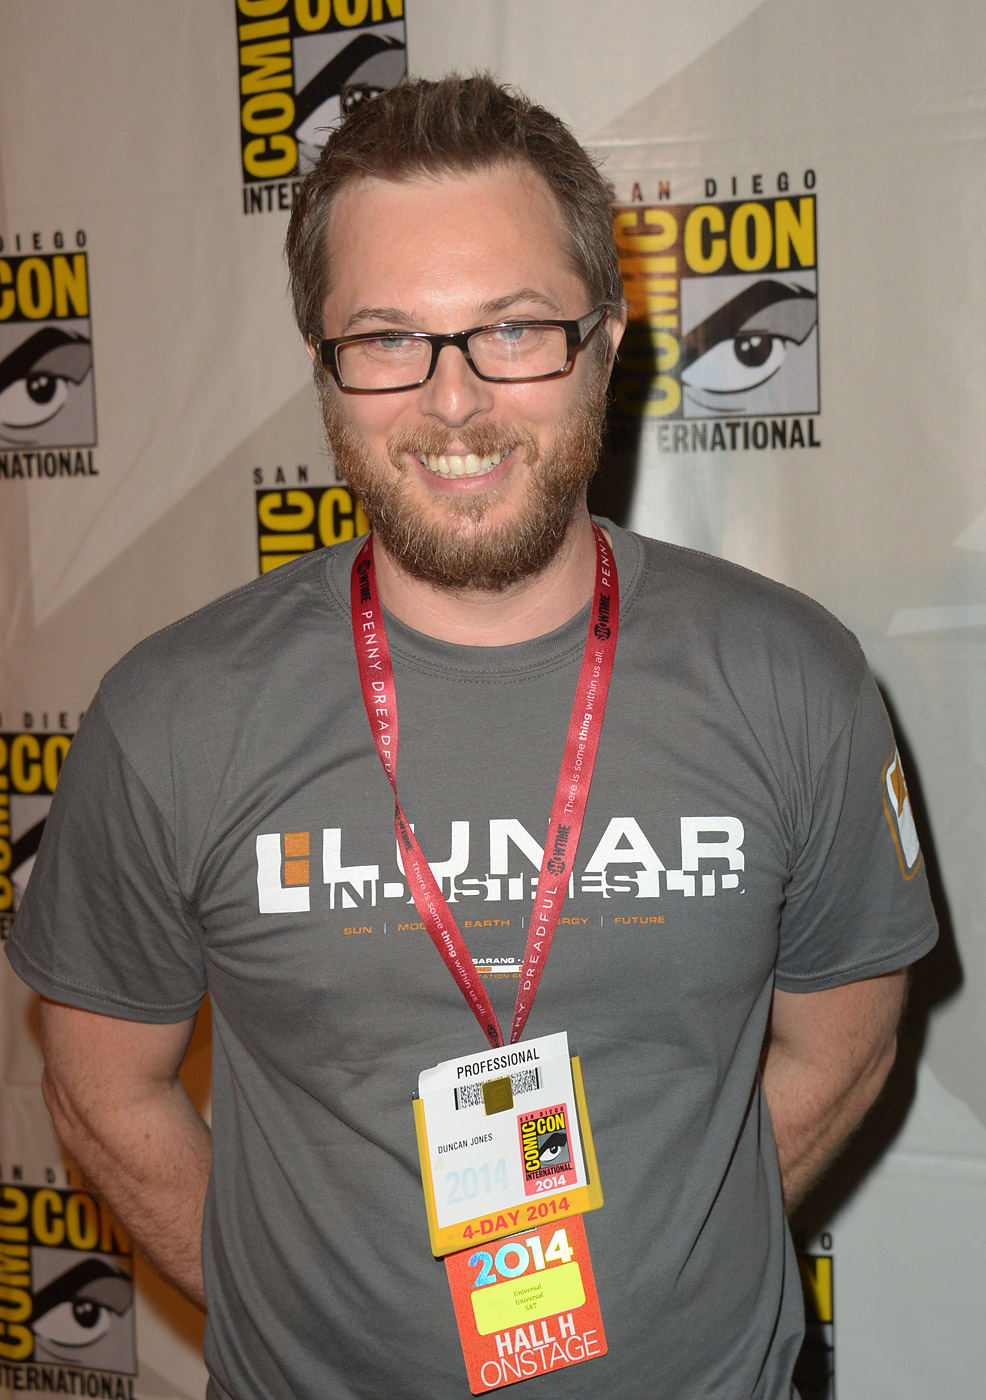 Director Duncan Jones attends the Legendary Pictures preview and panel during Comic-Con International 2014 at San Diego Convention Center on July 26, 2014 in San Diego, California.